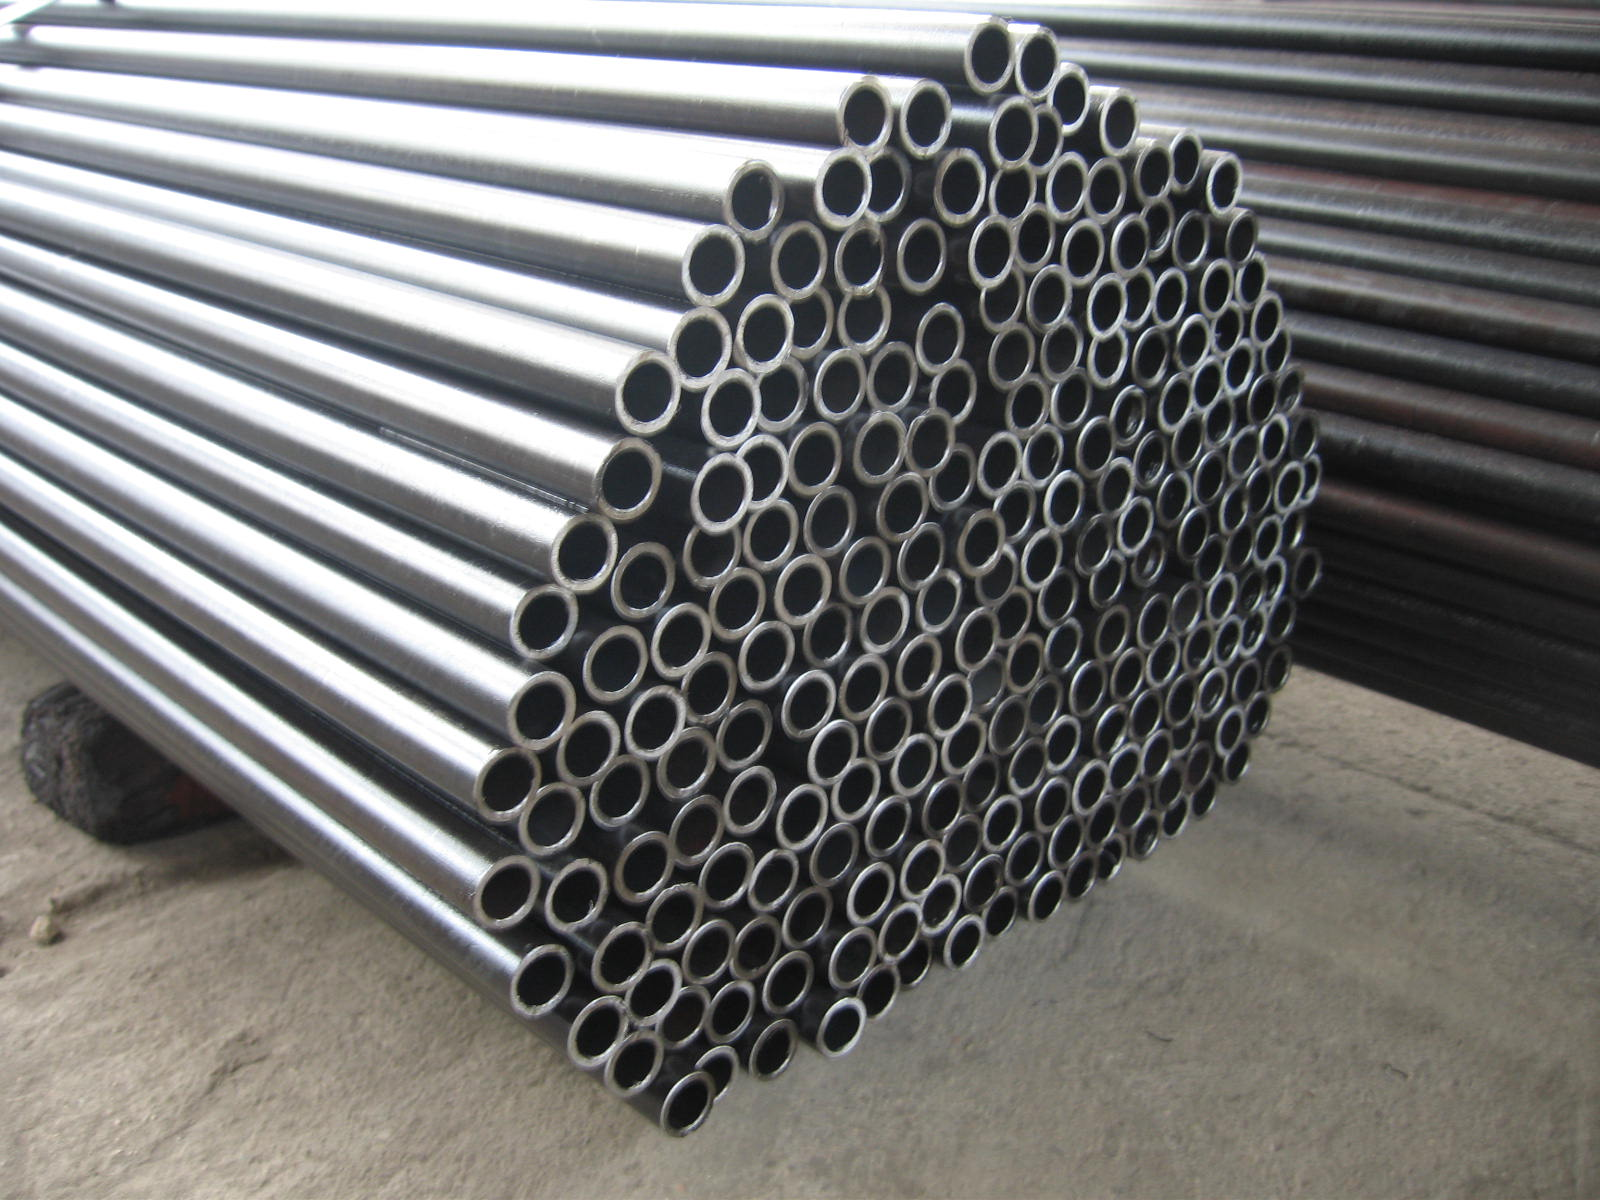 304l Seamless Pipe Manufacturers 304l Stainless Steel Seamless Pipe 304l Ss Seamless Pipe Suppliers In India Citizen Pipes